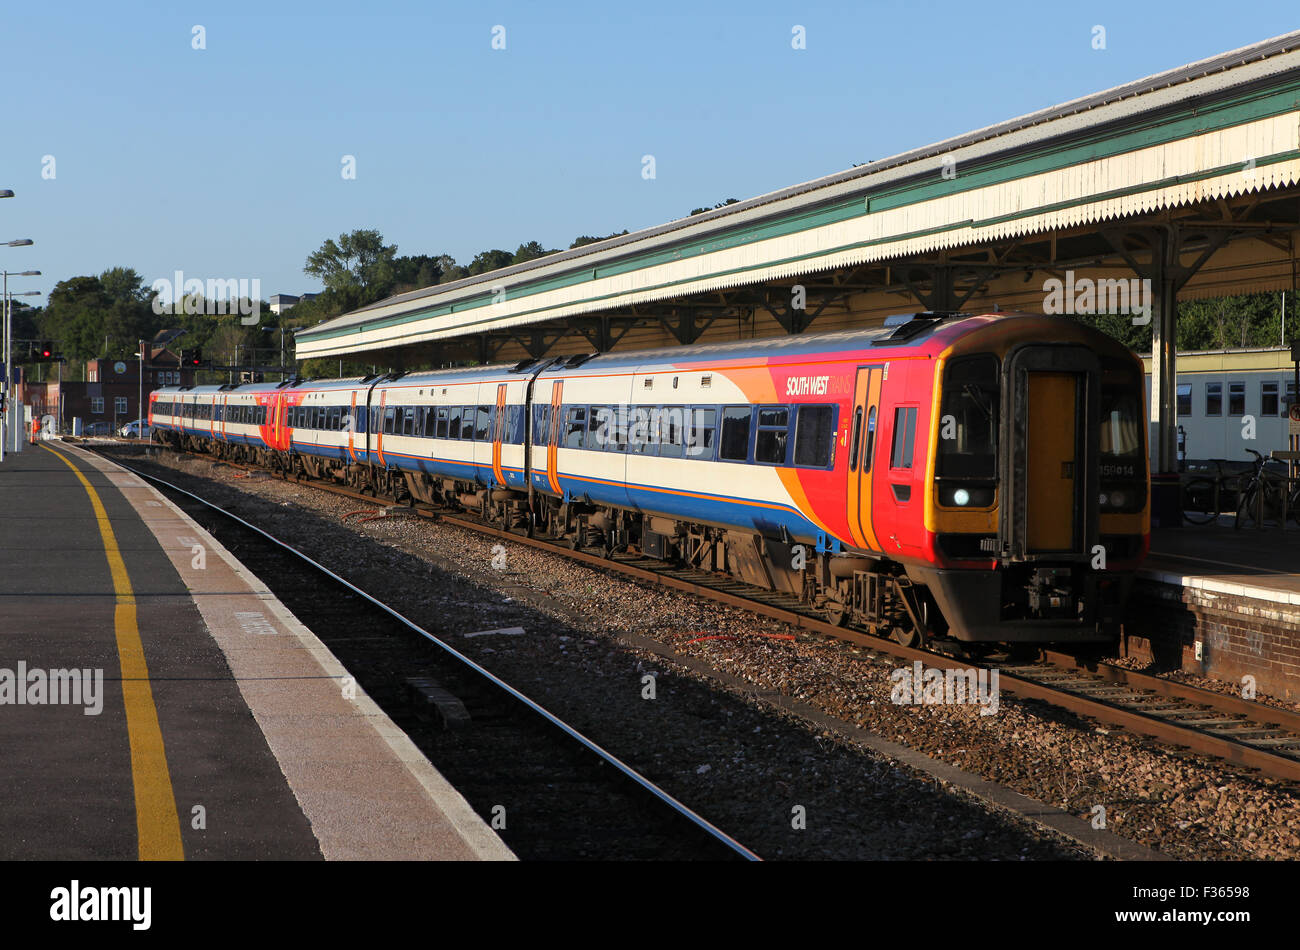 South West Trains class 159 DMUs at Exeter St Davids - Stock Image